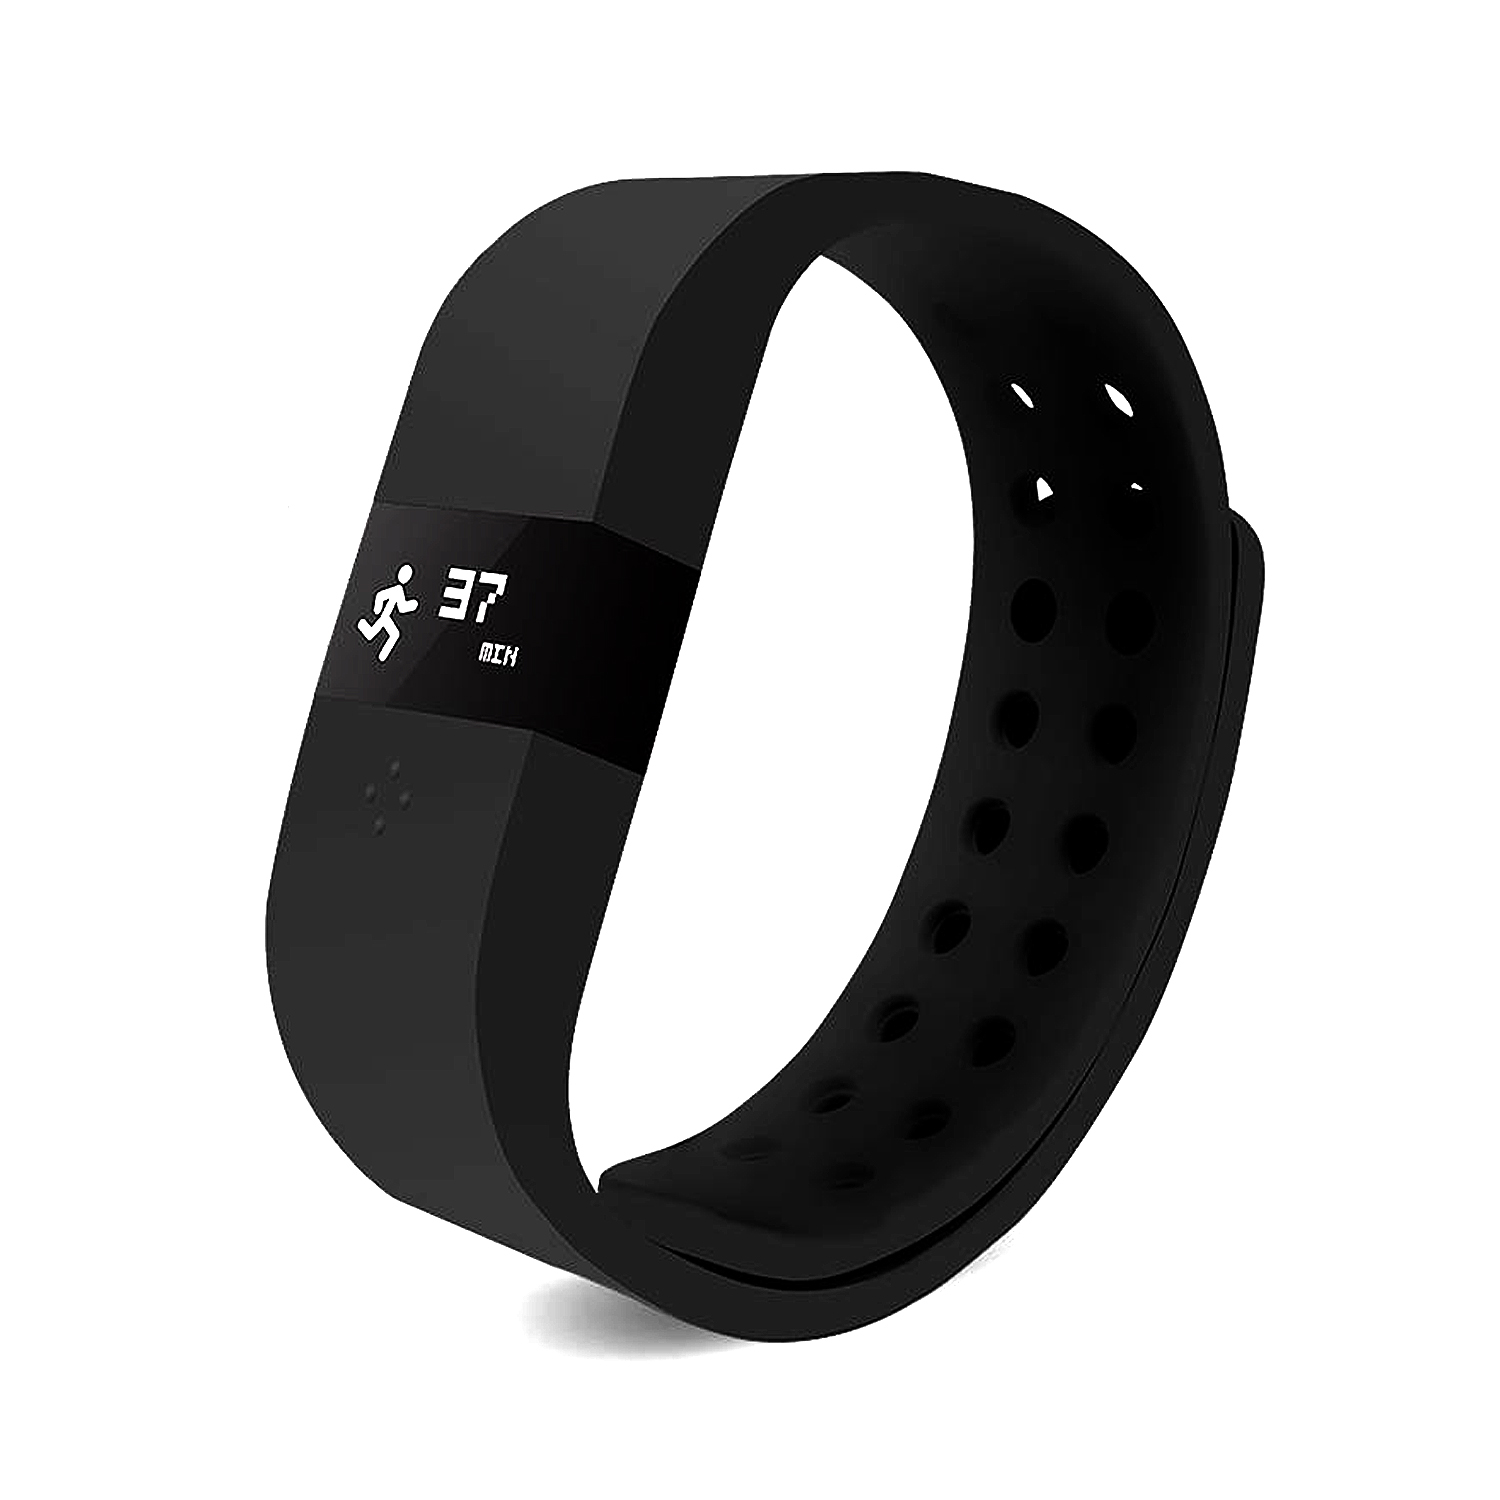 ERI Fitness Activity Tracker Bracelet Pedometer Sleep Monitor for Android iOS Black